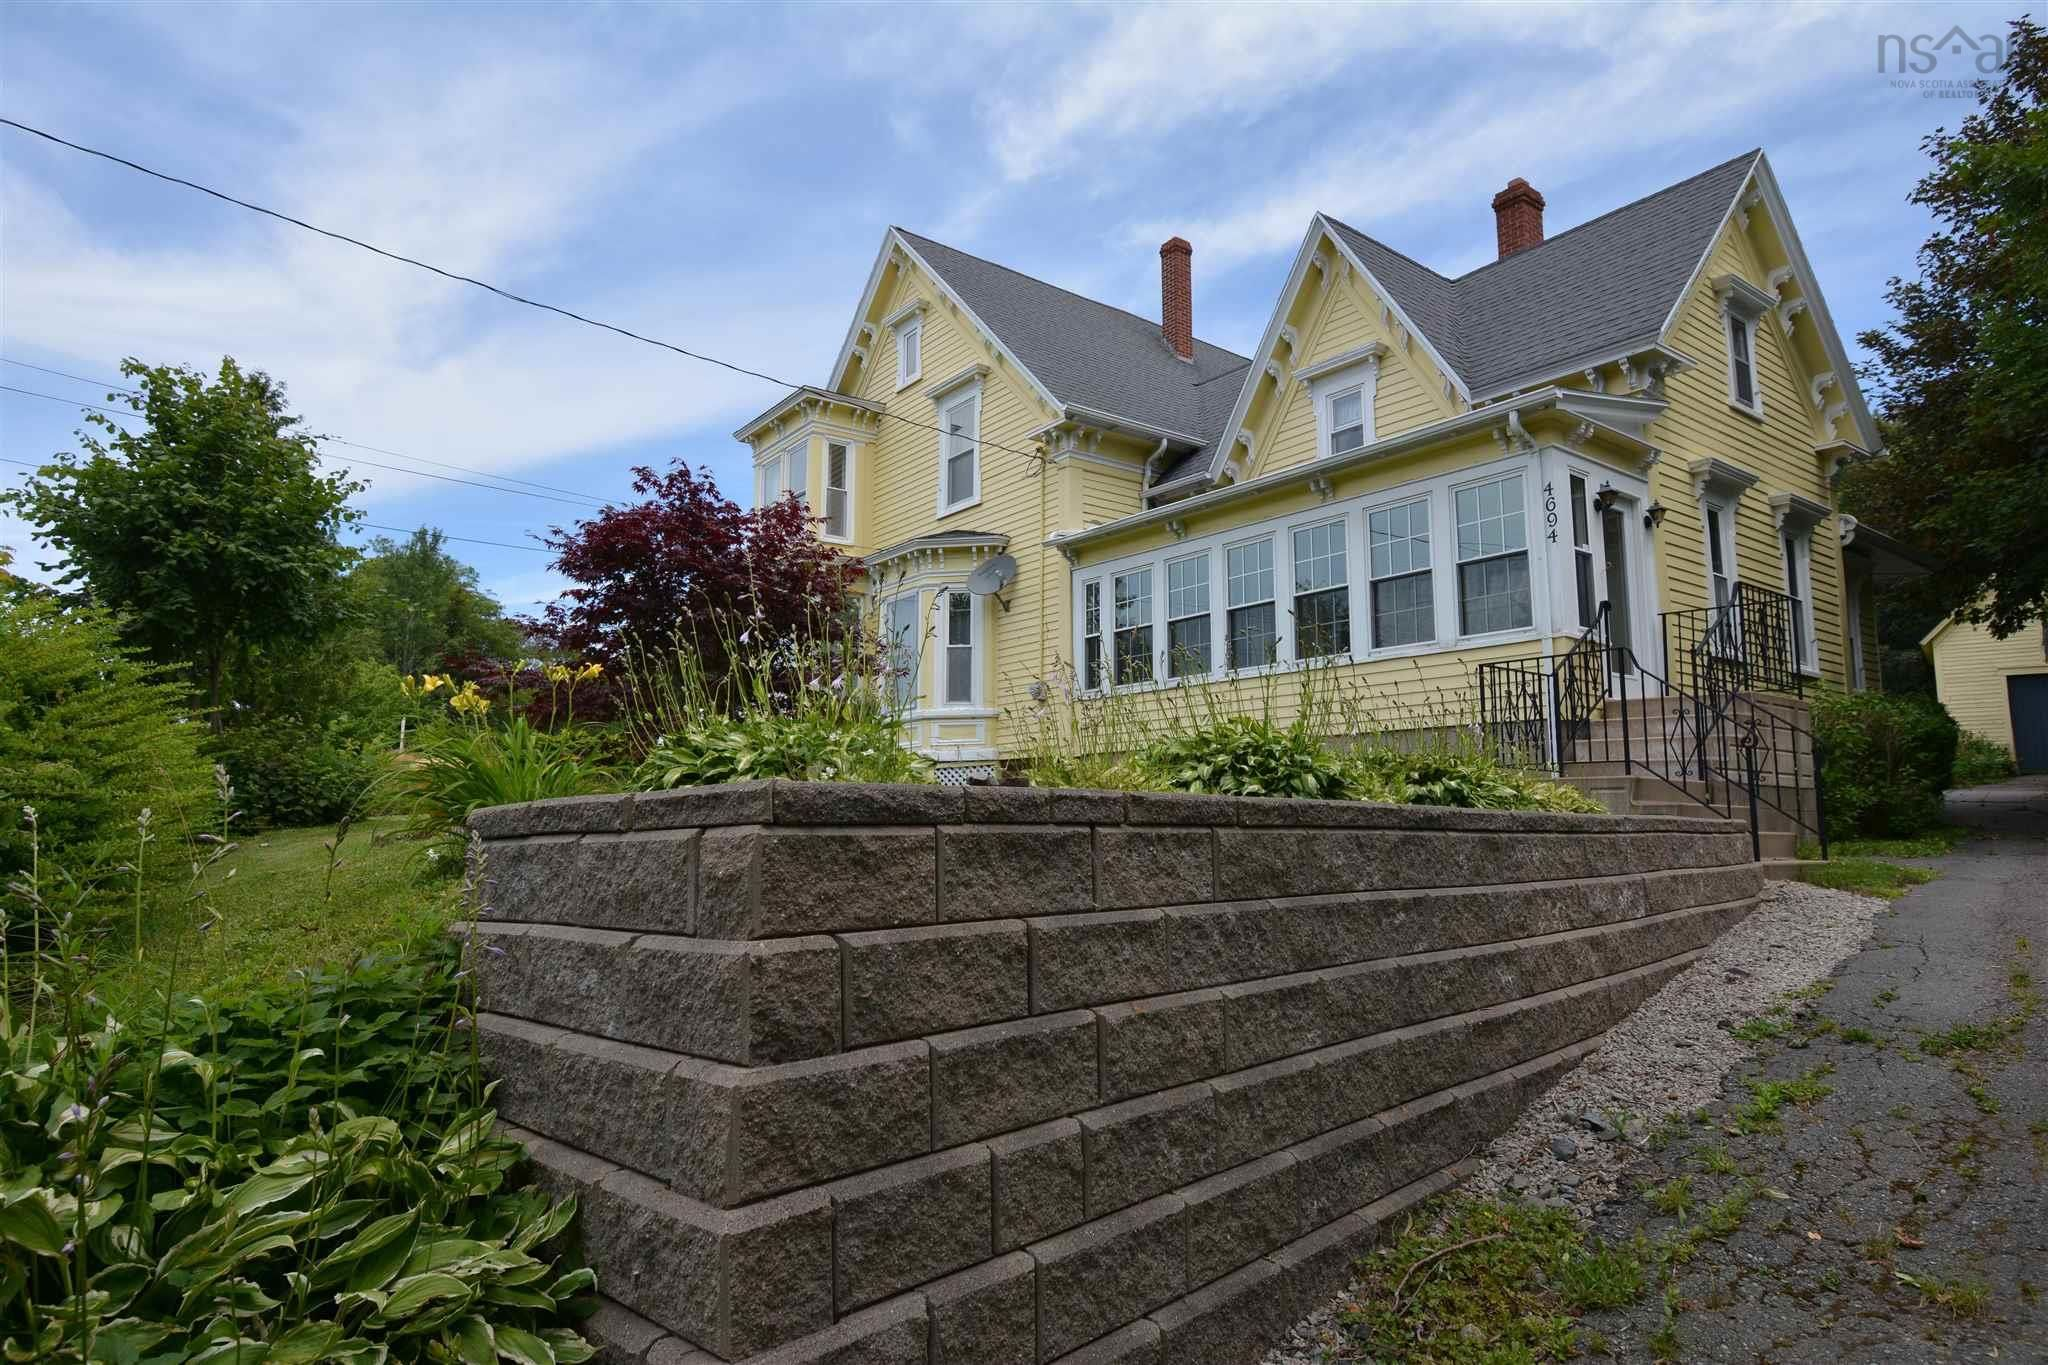 Main Photo: 4694 HIGHWAY 1 in Weymouth: 401-Digby County Residential for sale (Annapolis Valley)  : MLS®# 202122329